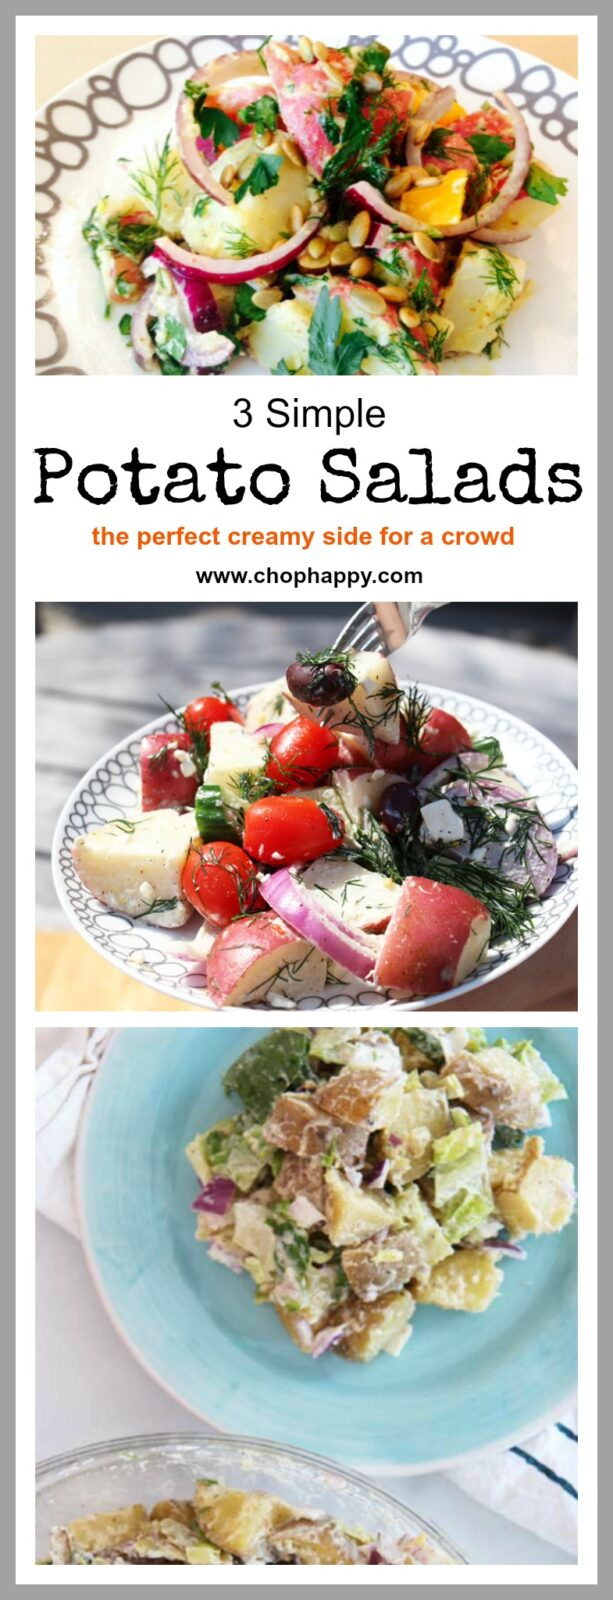 3 Amazingly Easy Potato Salad Recipes- All of them are a family favorite that makes smiles happen instantly. 1. Caesar Potato Salad, 2. Greek Potato Salad, and 3. Dijon Potato Salad. All 3 are make-ahead awesome. l www.ChopHappy.com